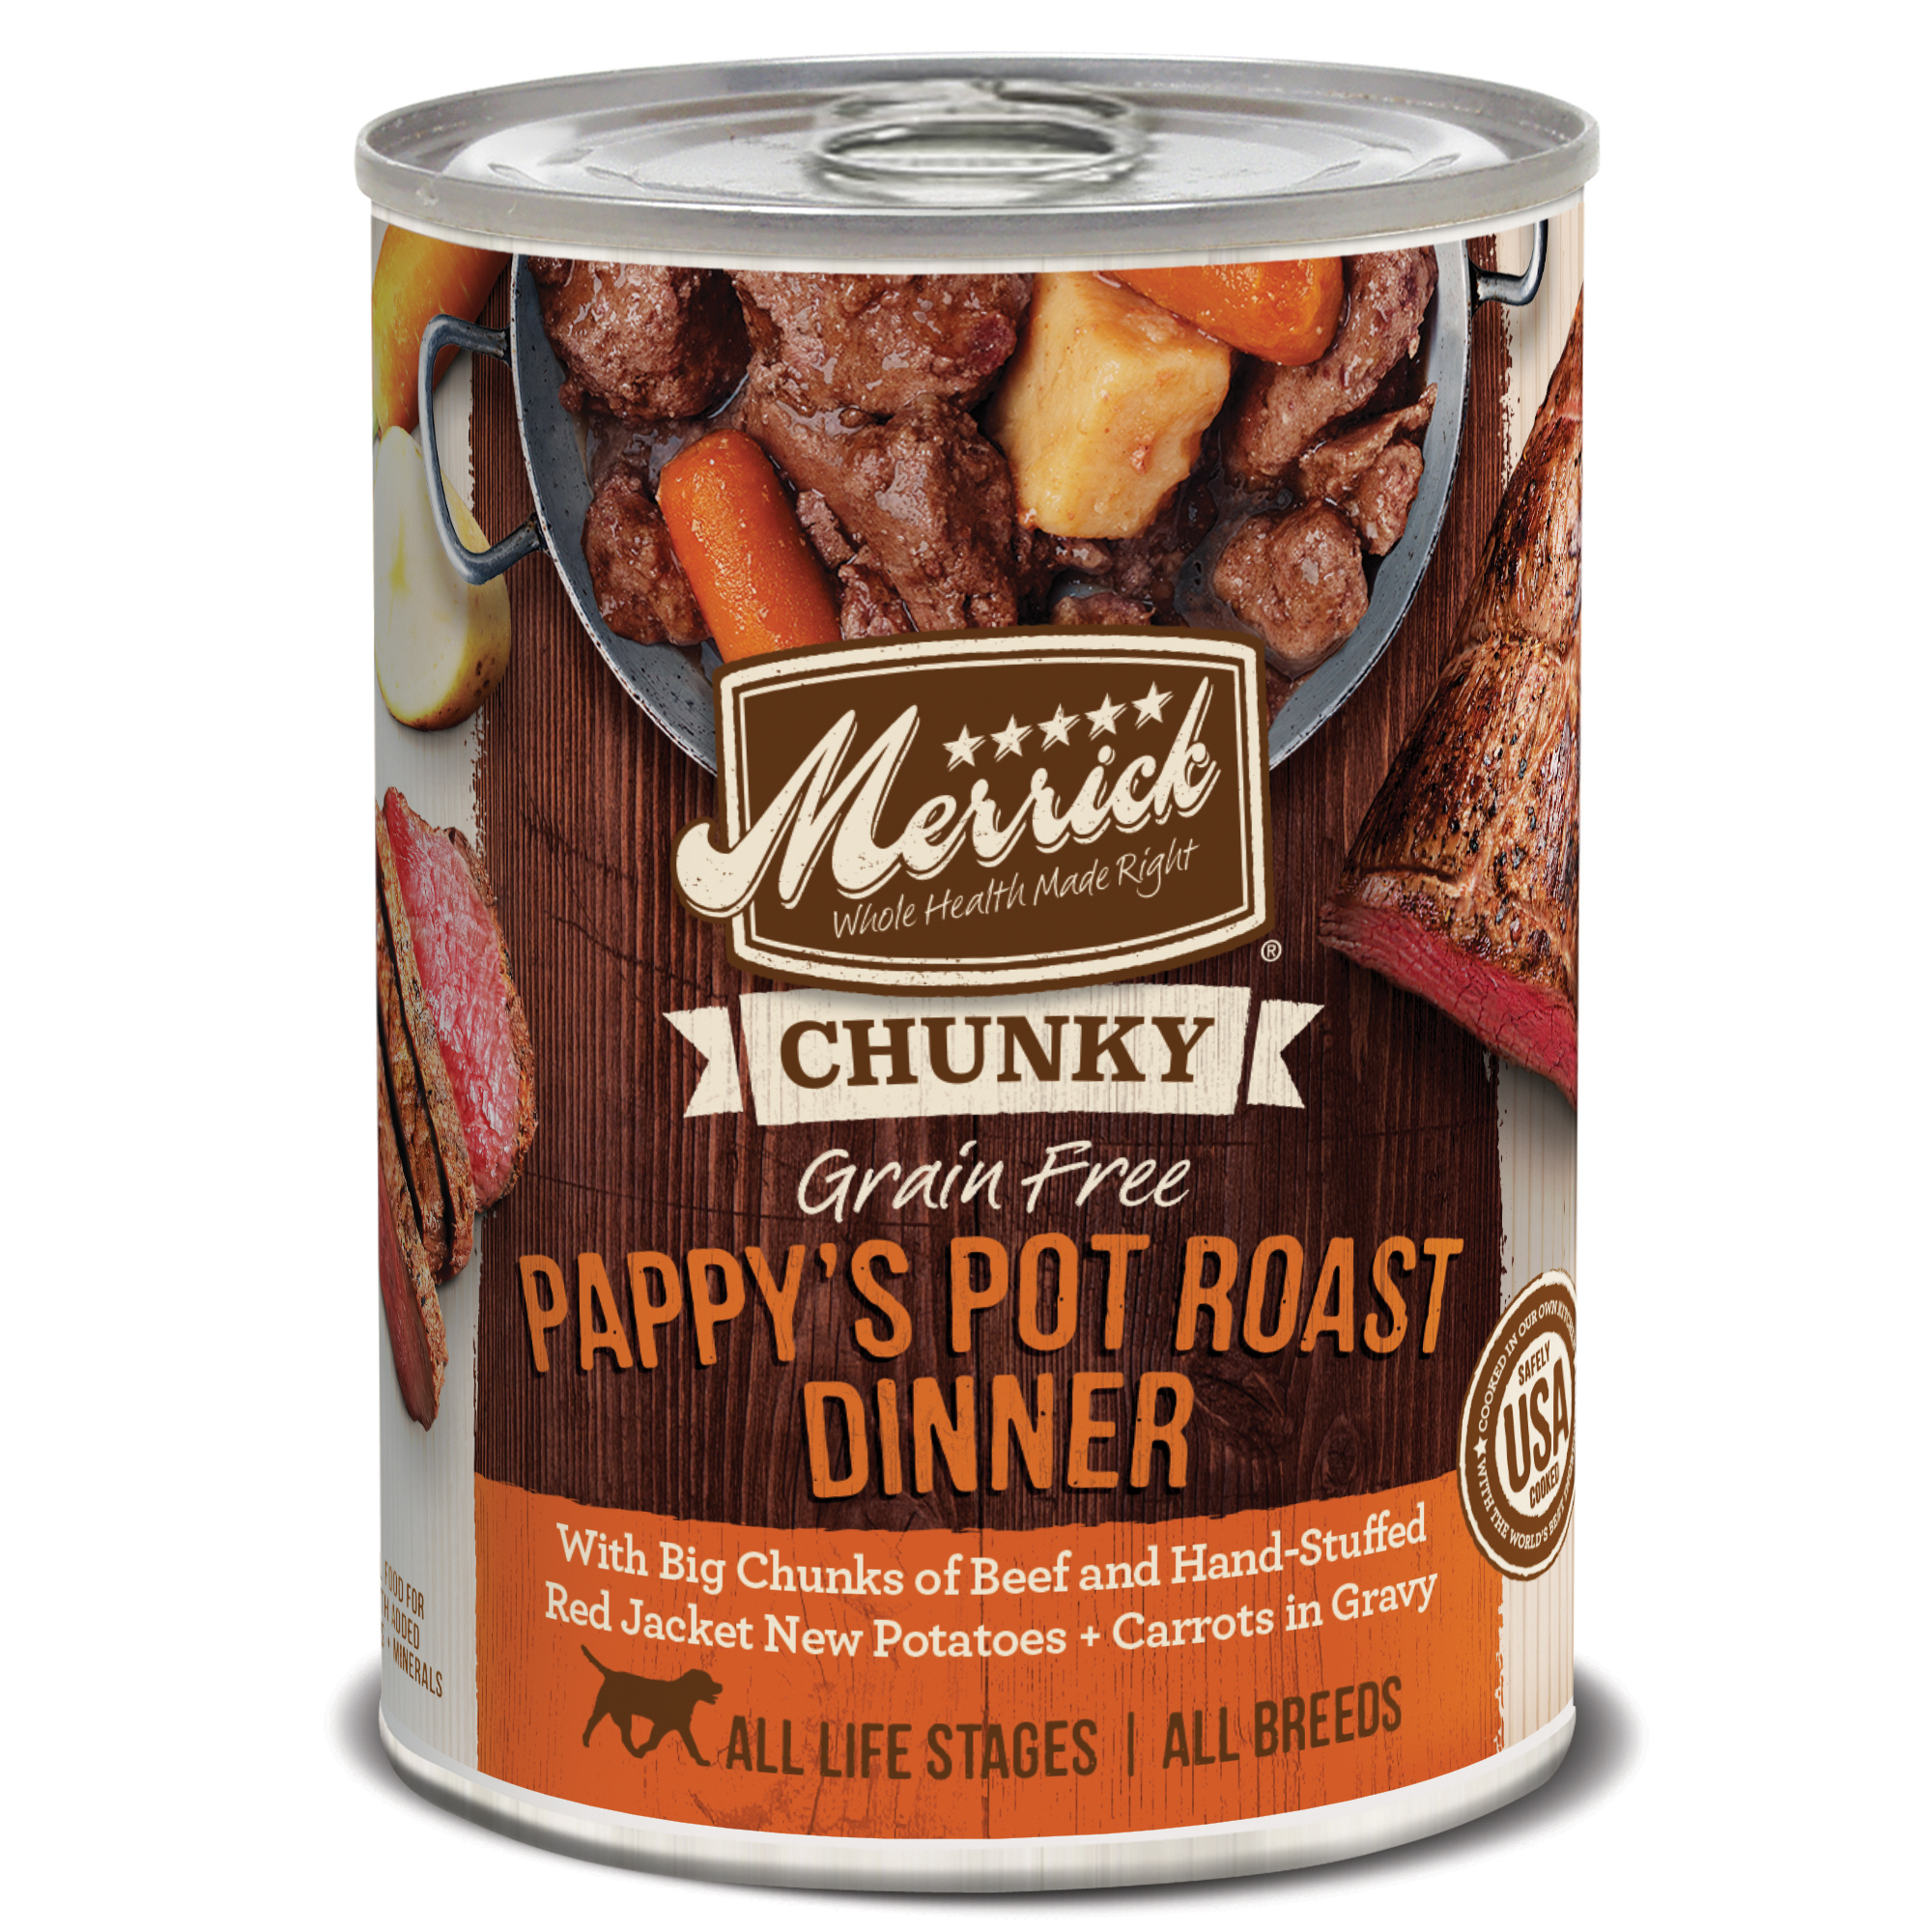 Merrick Chunky Grain-Free Pappy's Pot Roast Dinner Canned Dog Food, 12.7-oz, case of 12